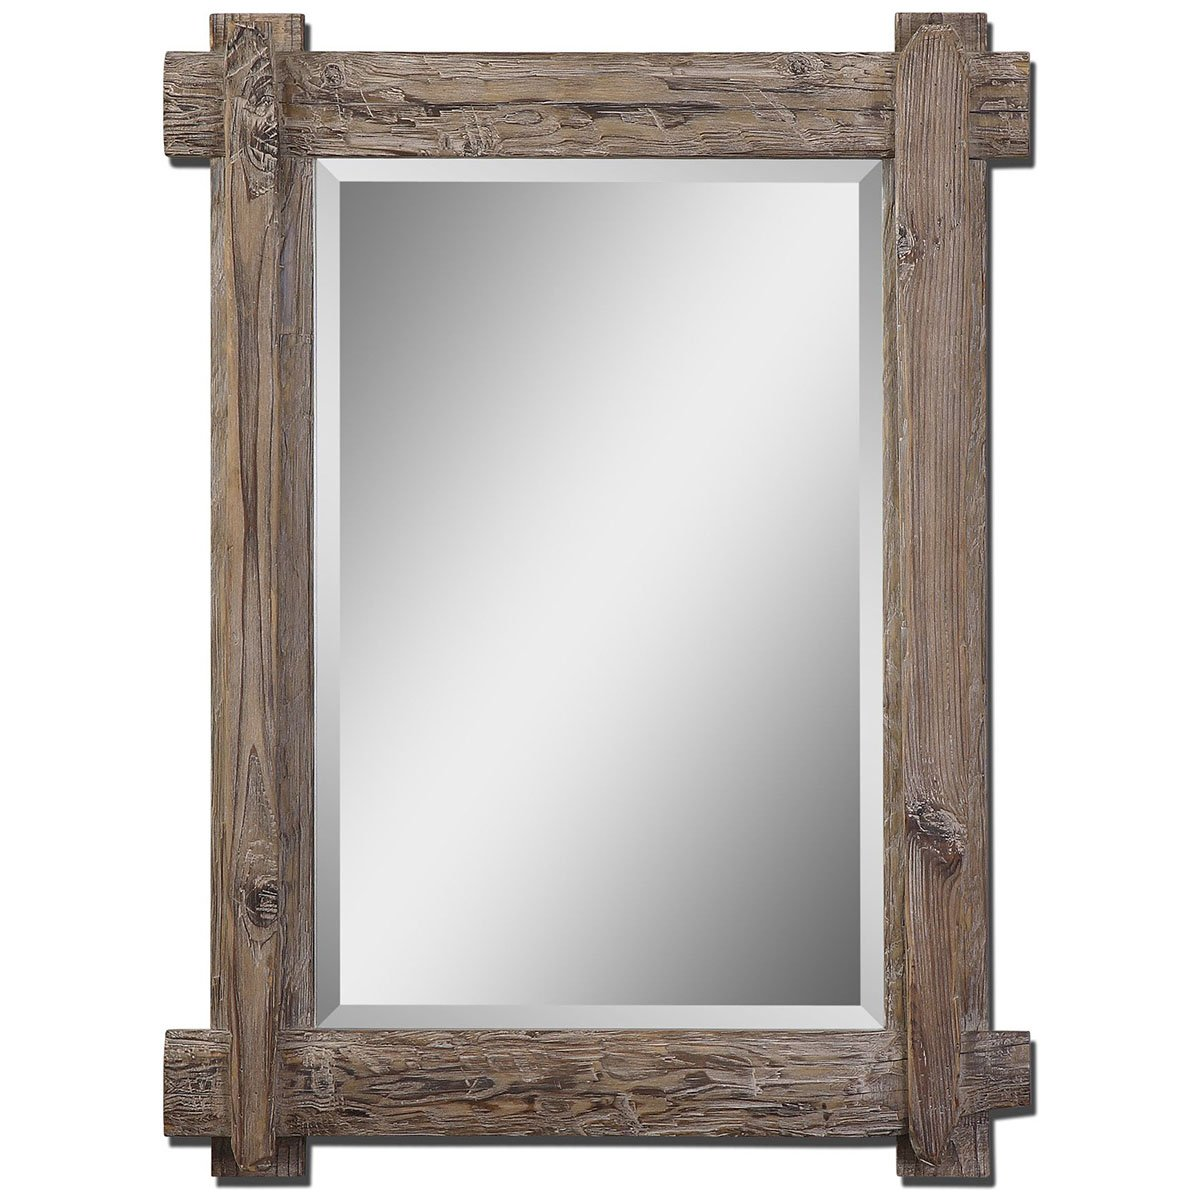 Uncategorized Rustic Wood Frame Mirror amazon com uttermost claudio mirror 2 125 x 29 25 39 walnut home kitchen